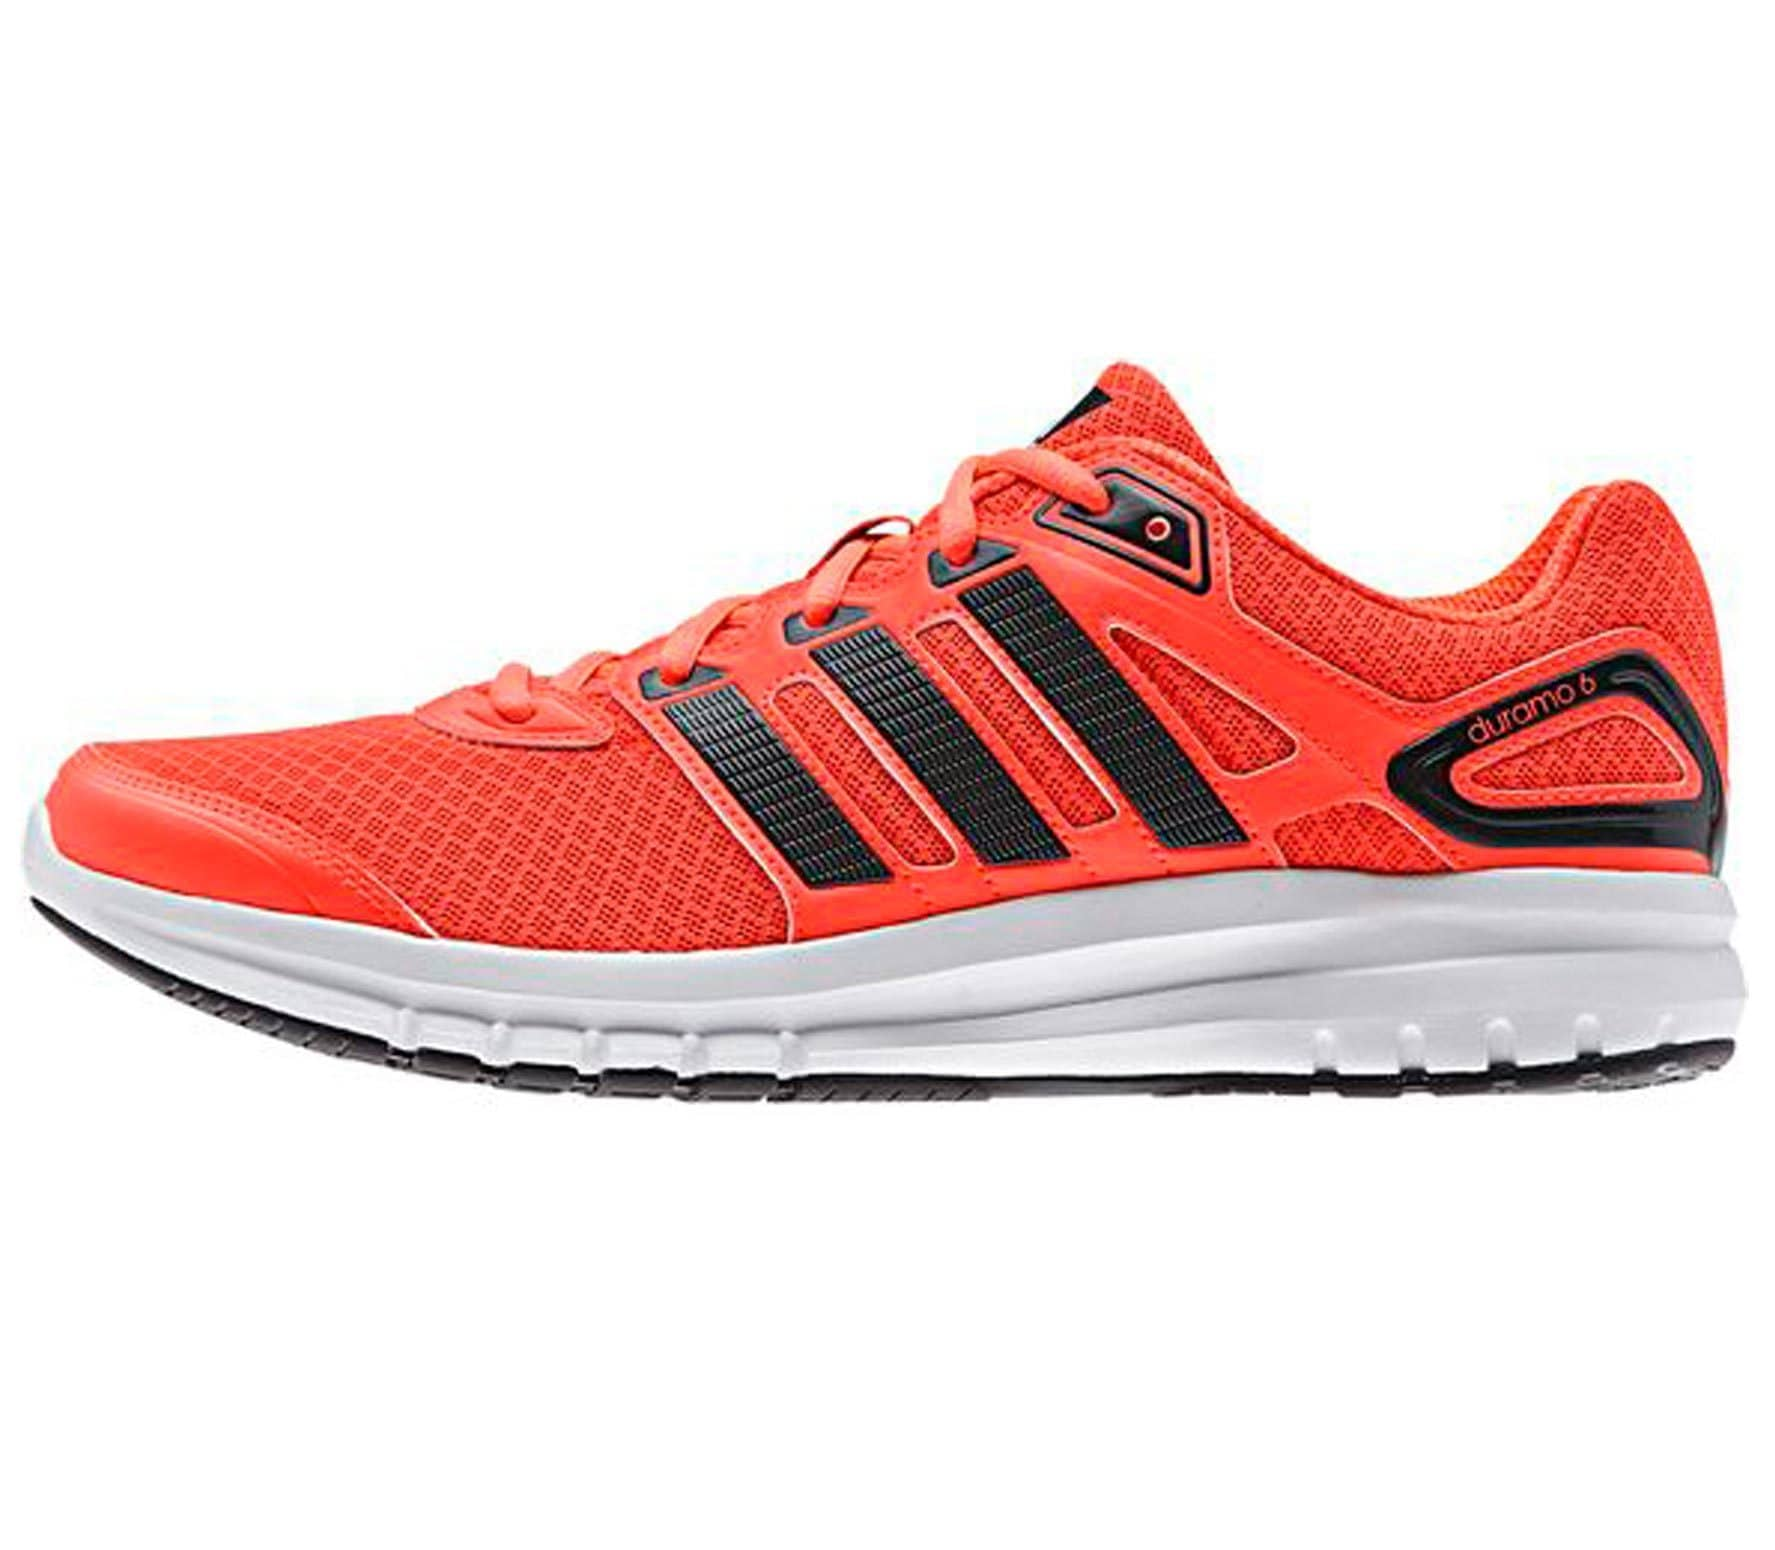 new style a9616 563f9 Adidas - Duramo 6 Hommes chaussure de course (rougenoir)